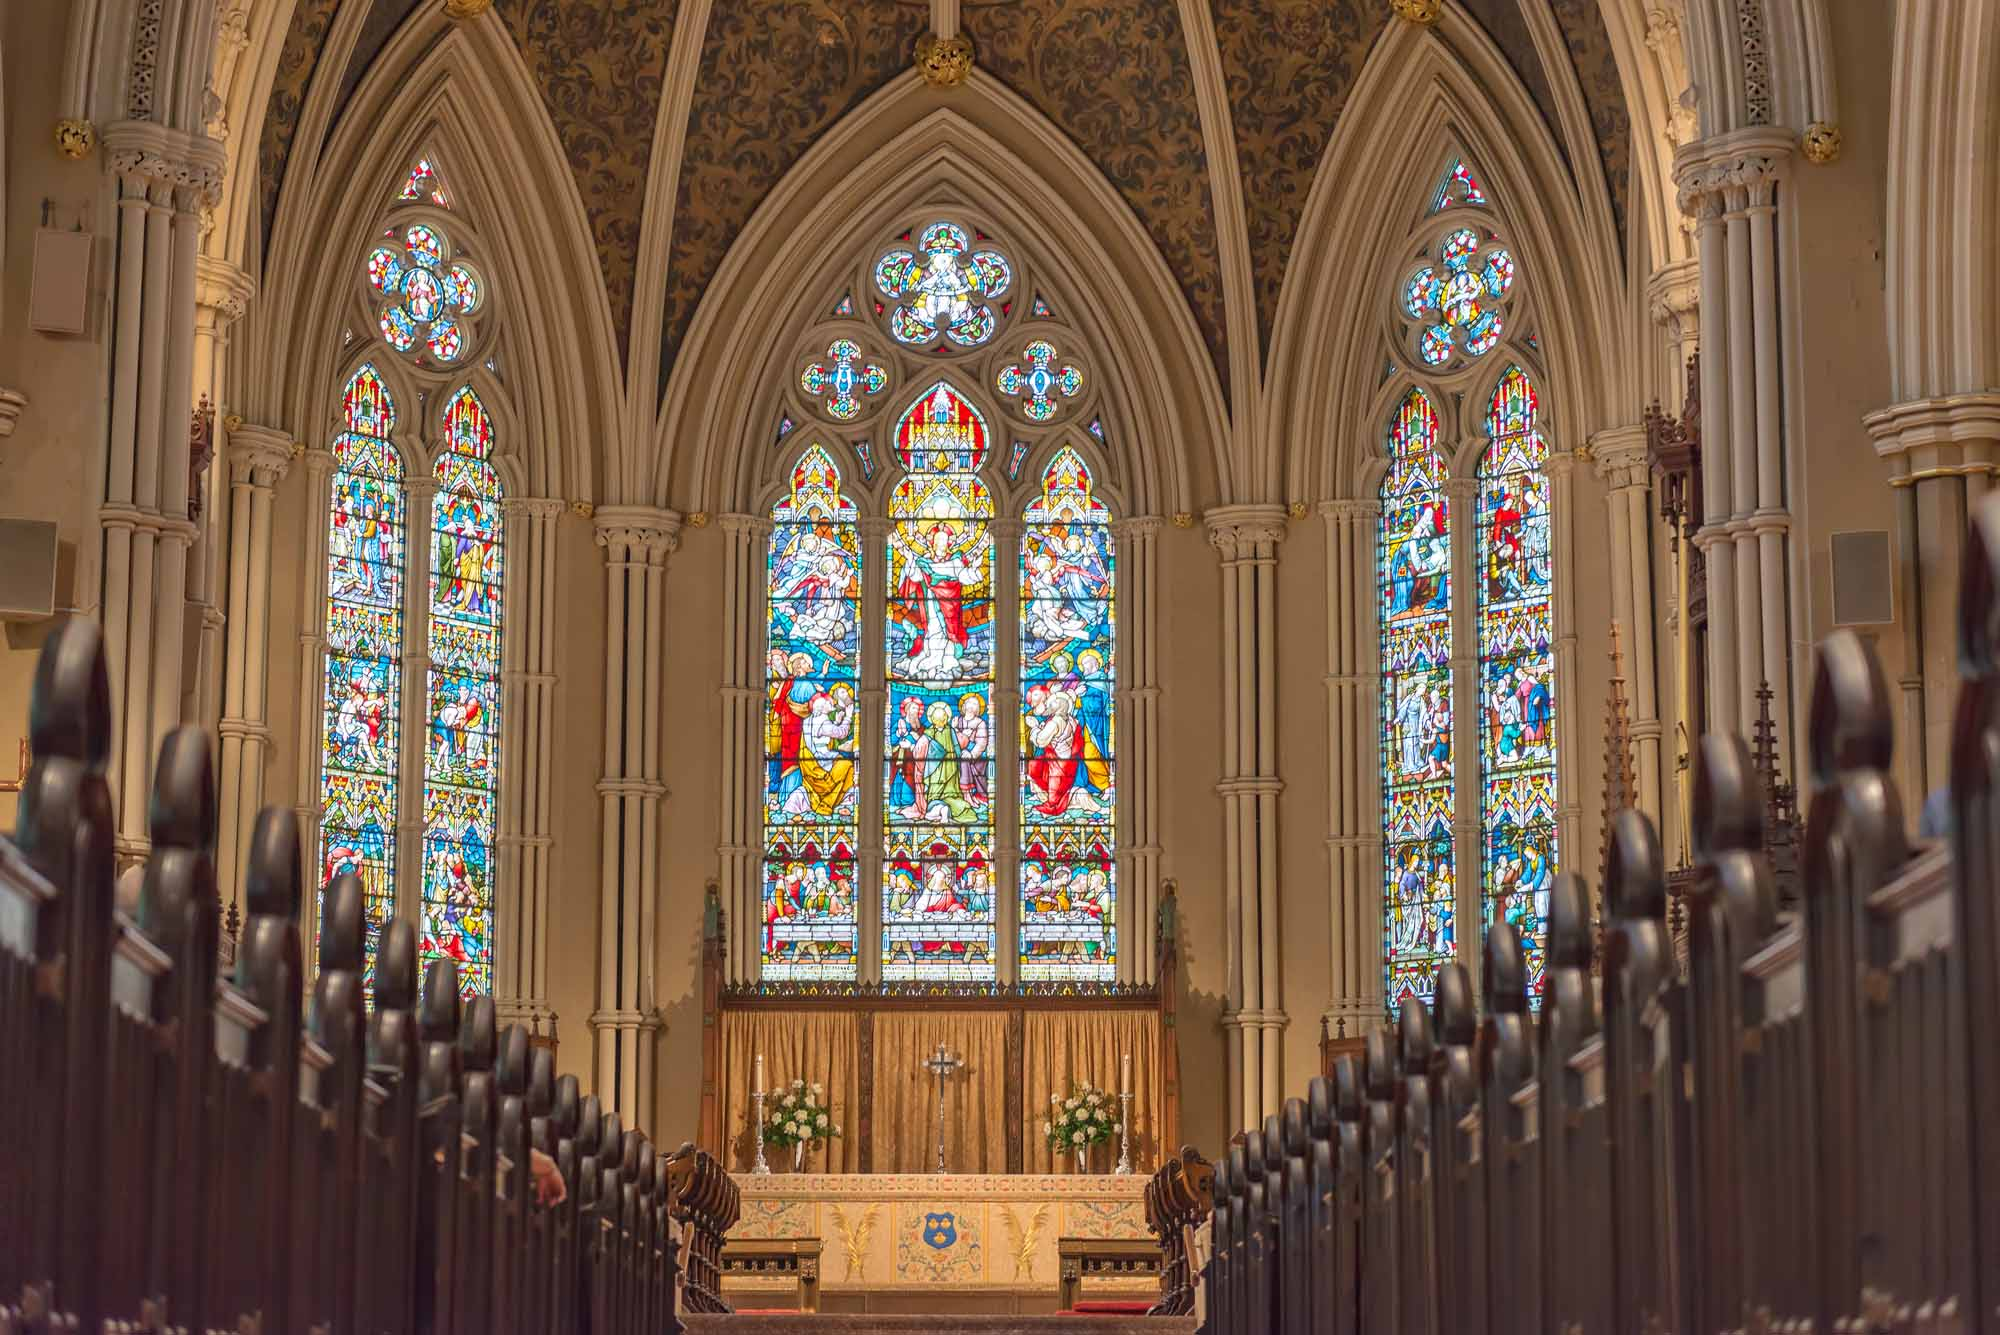 Inside St. James Cathedral in Toronto.